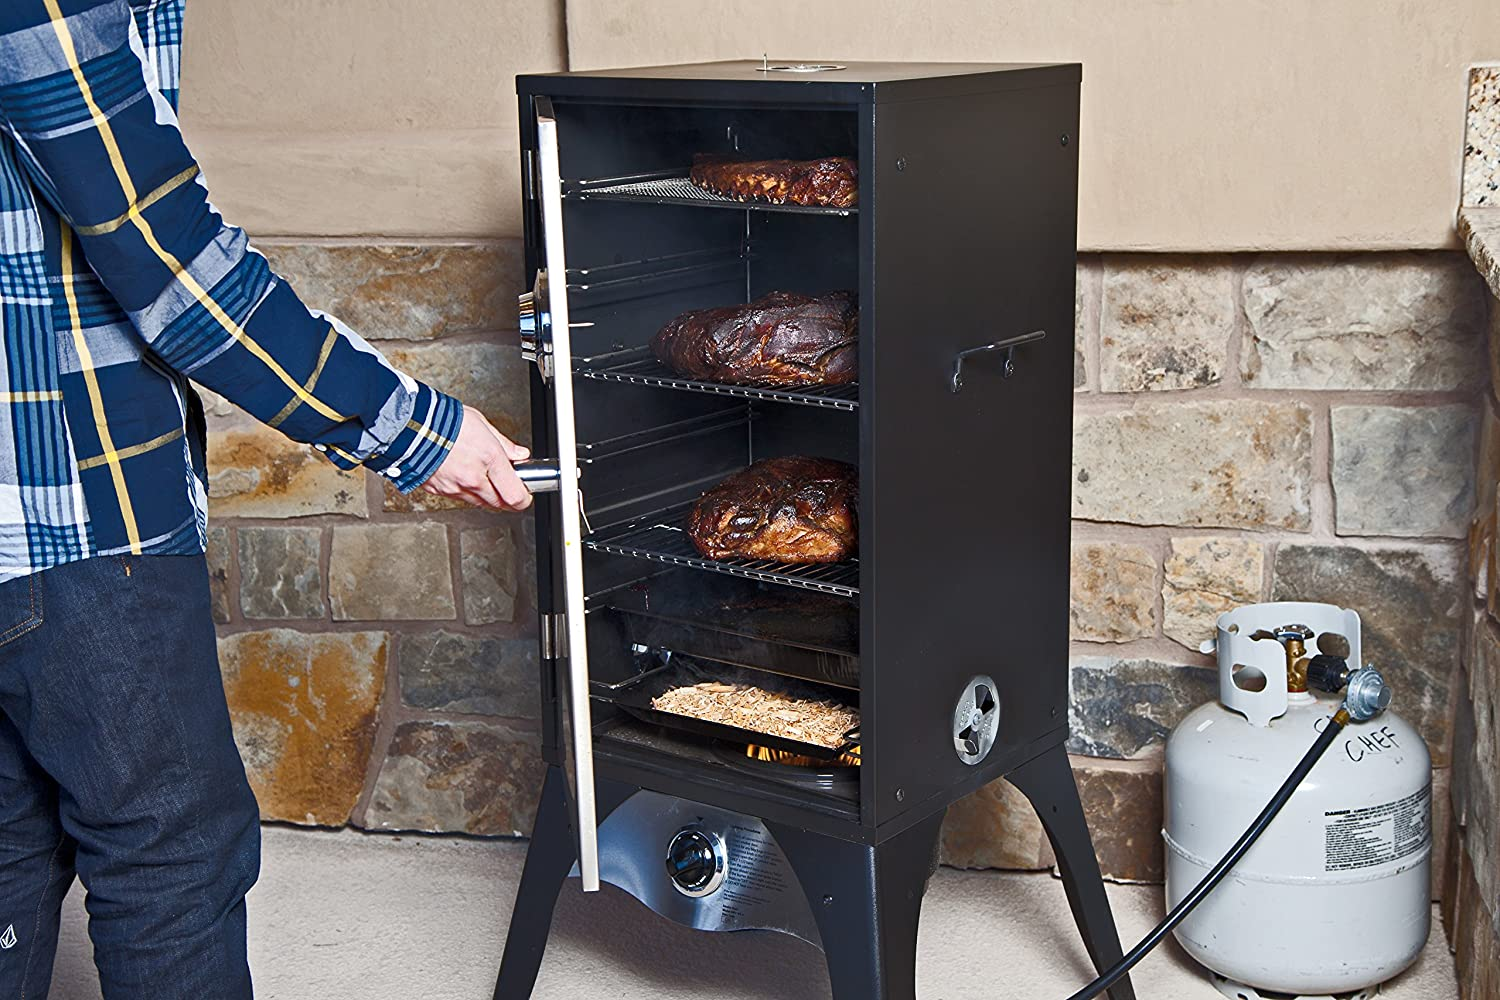 Amazon.com: Camp Chef Smoker - Bóveda de humo grande de 18 ...